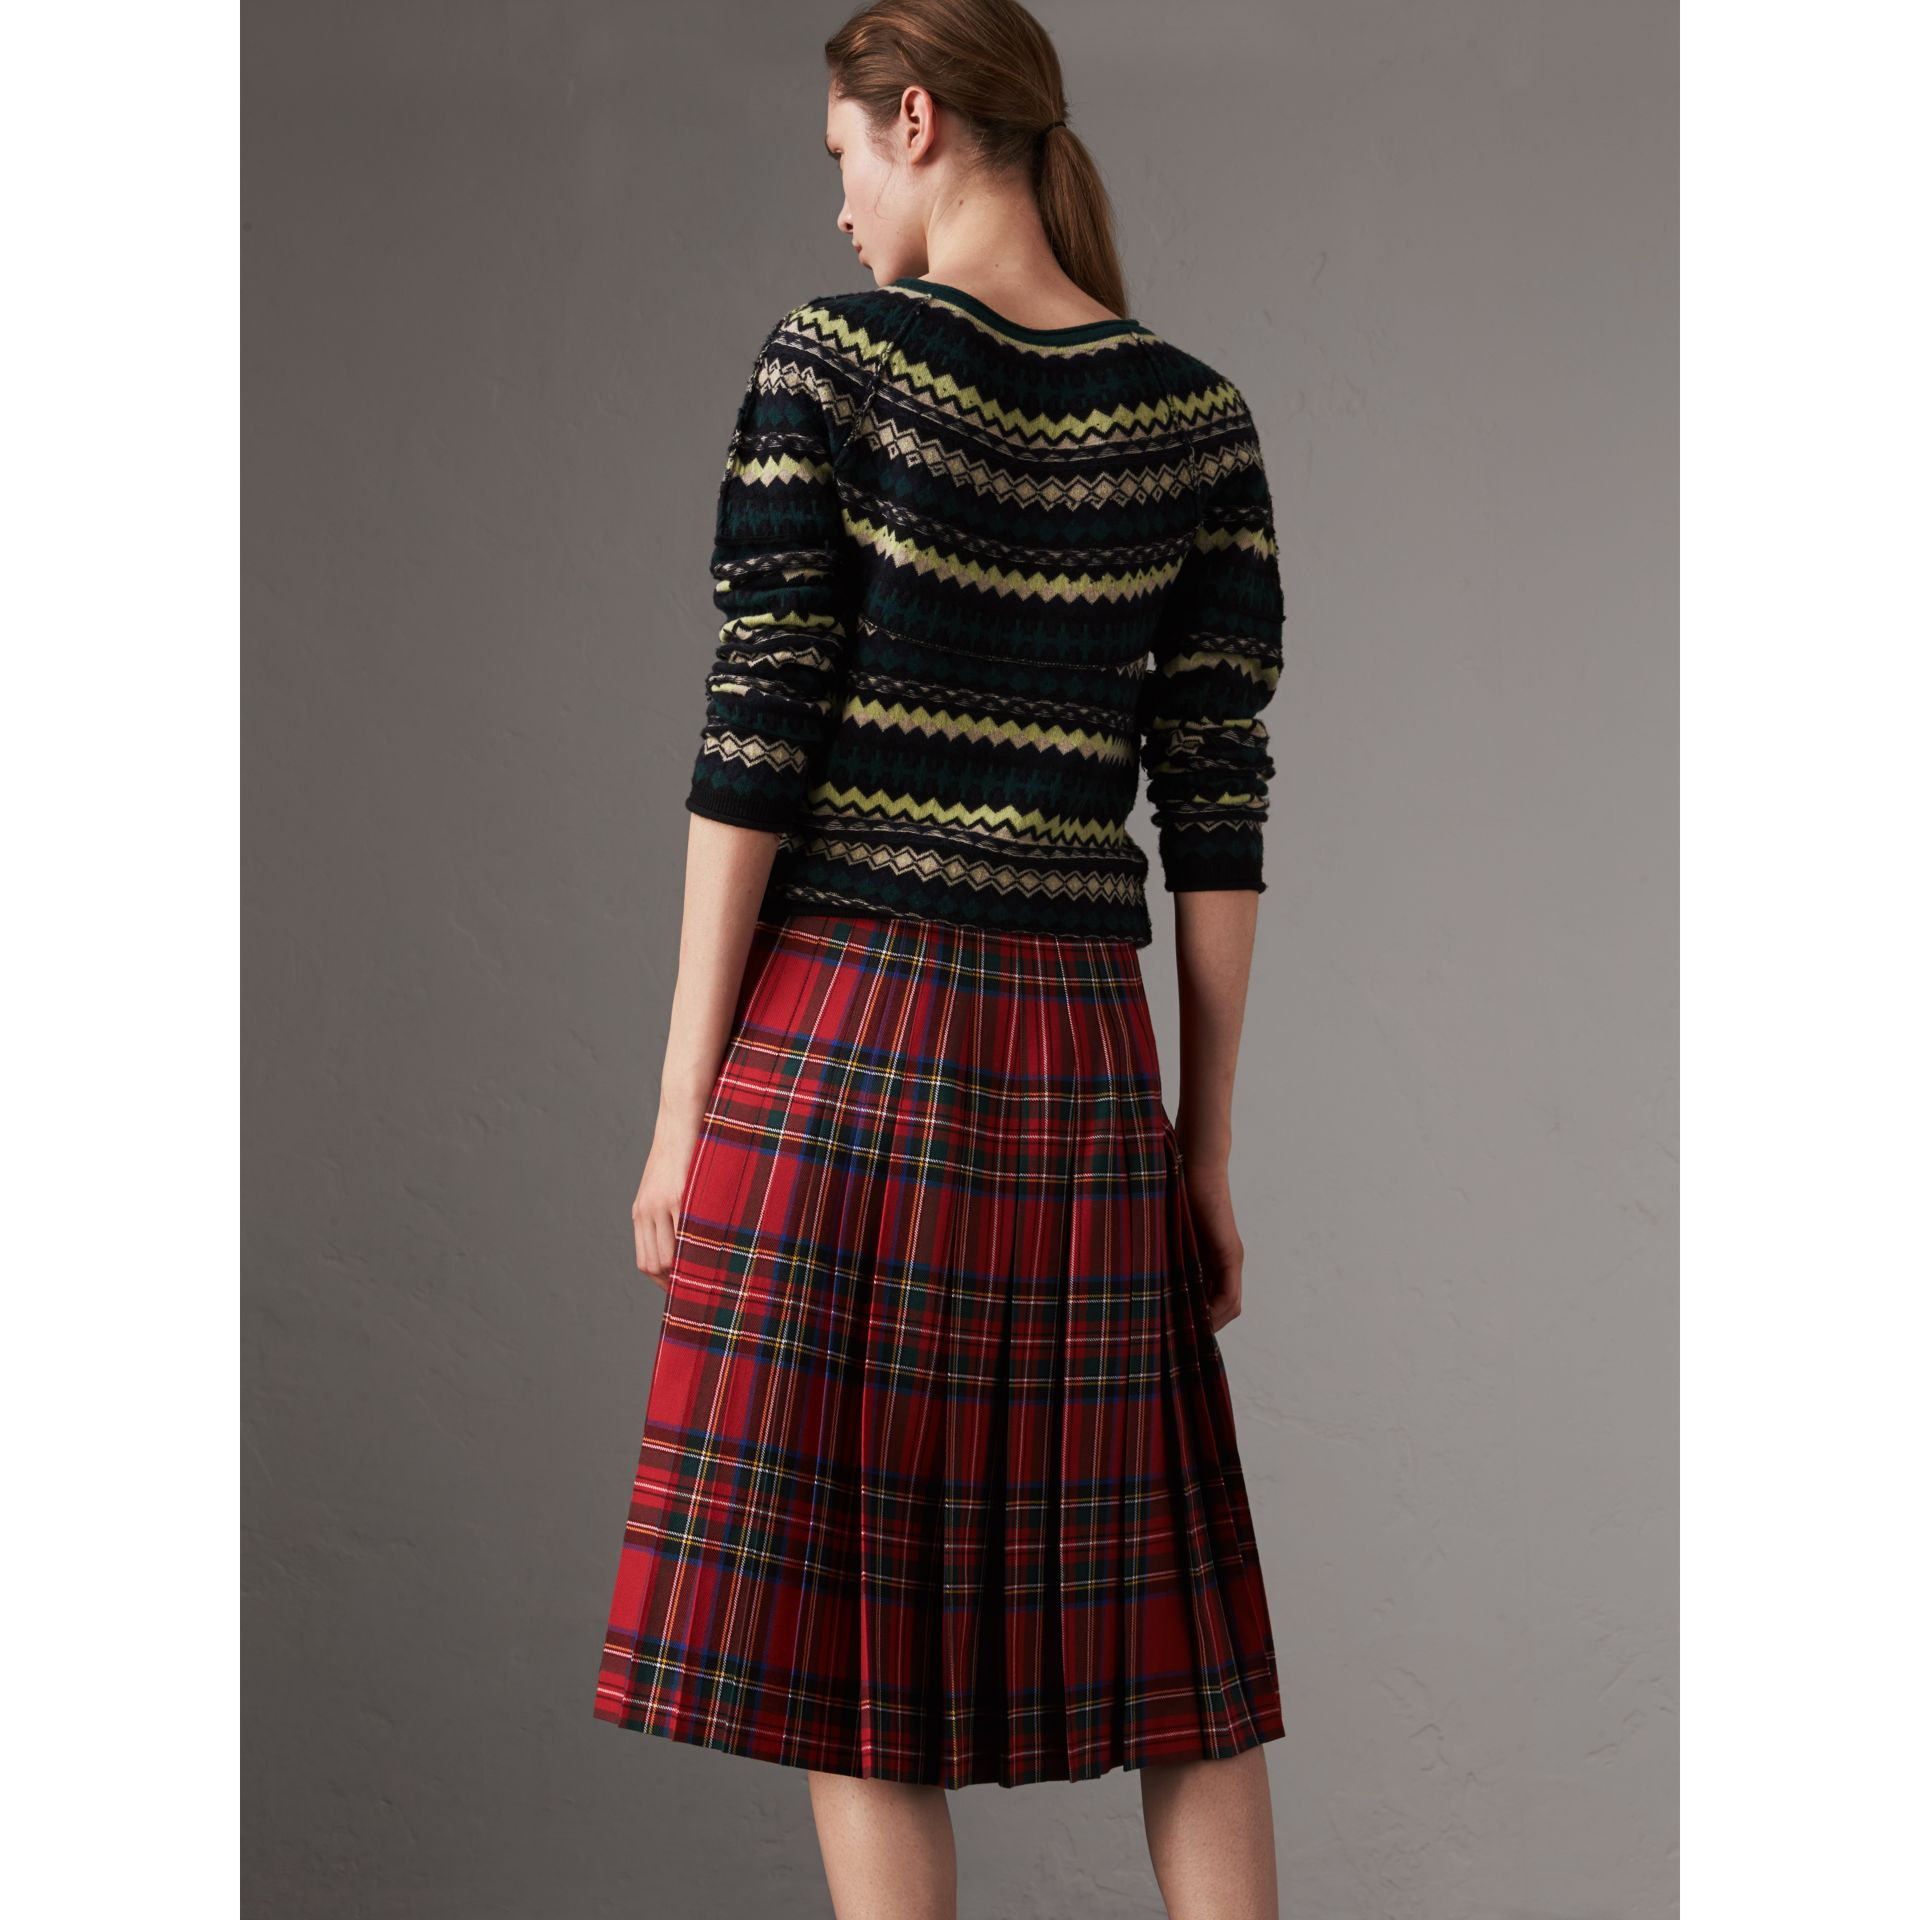 Fair Isle Wool Sweater in Olive Green - Women | Burberry Singapore - gallery image 2